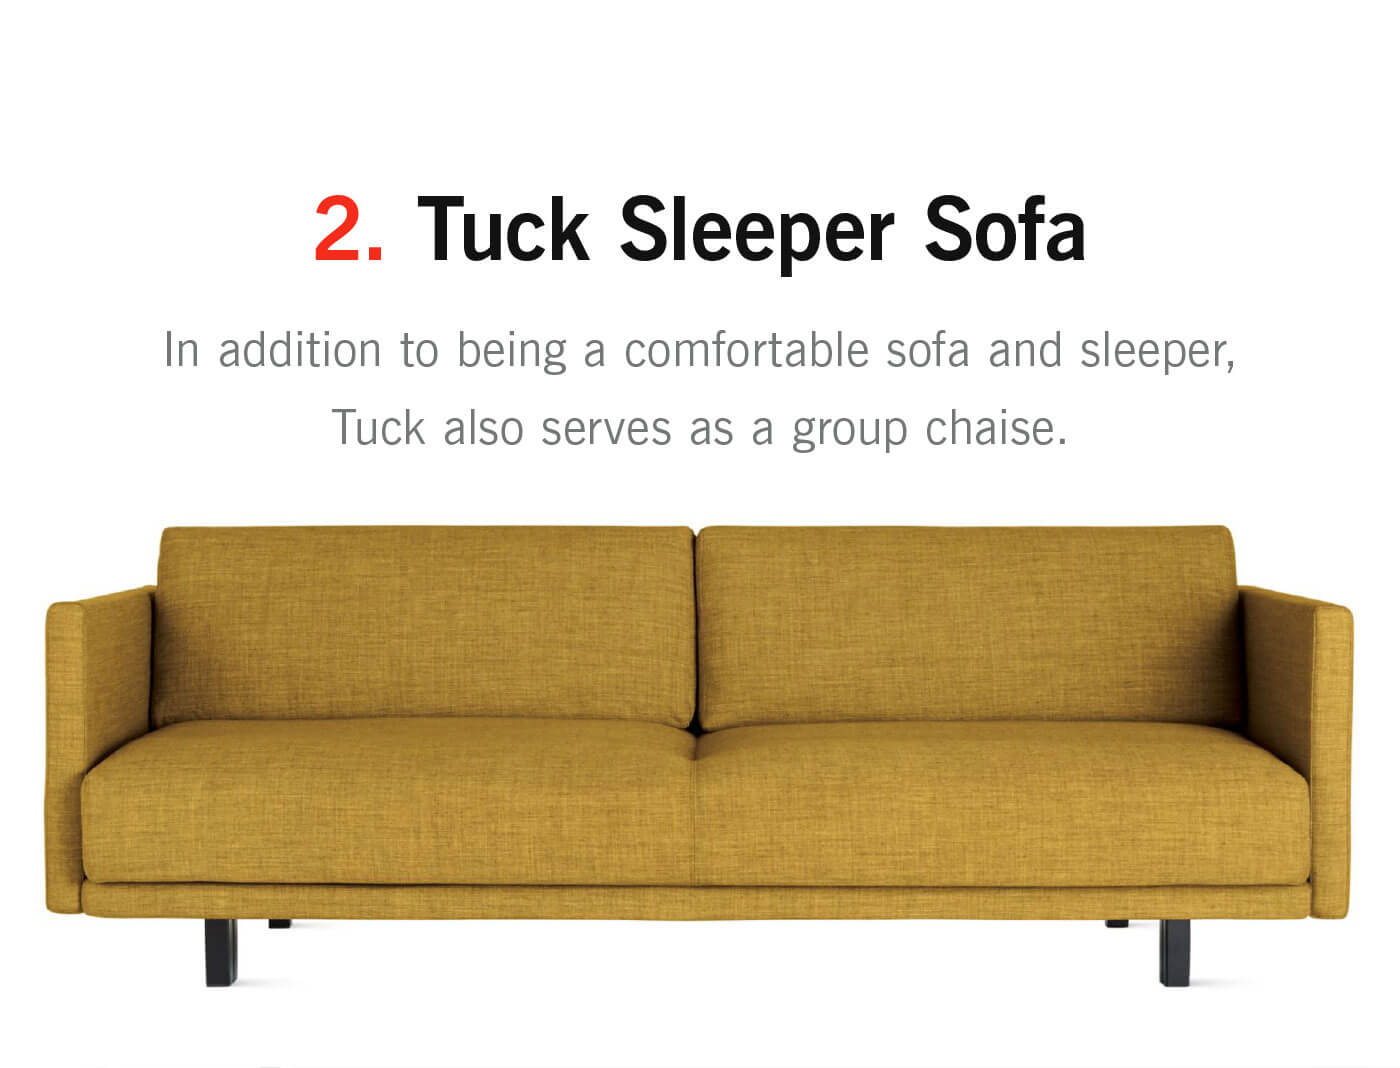 Beau Tuck Sleeper Sofa   In Addition To Being A Comfortable Sofa And Sleeper,  Tuck Also